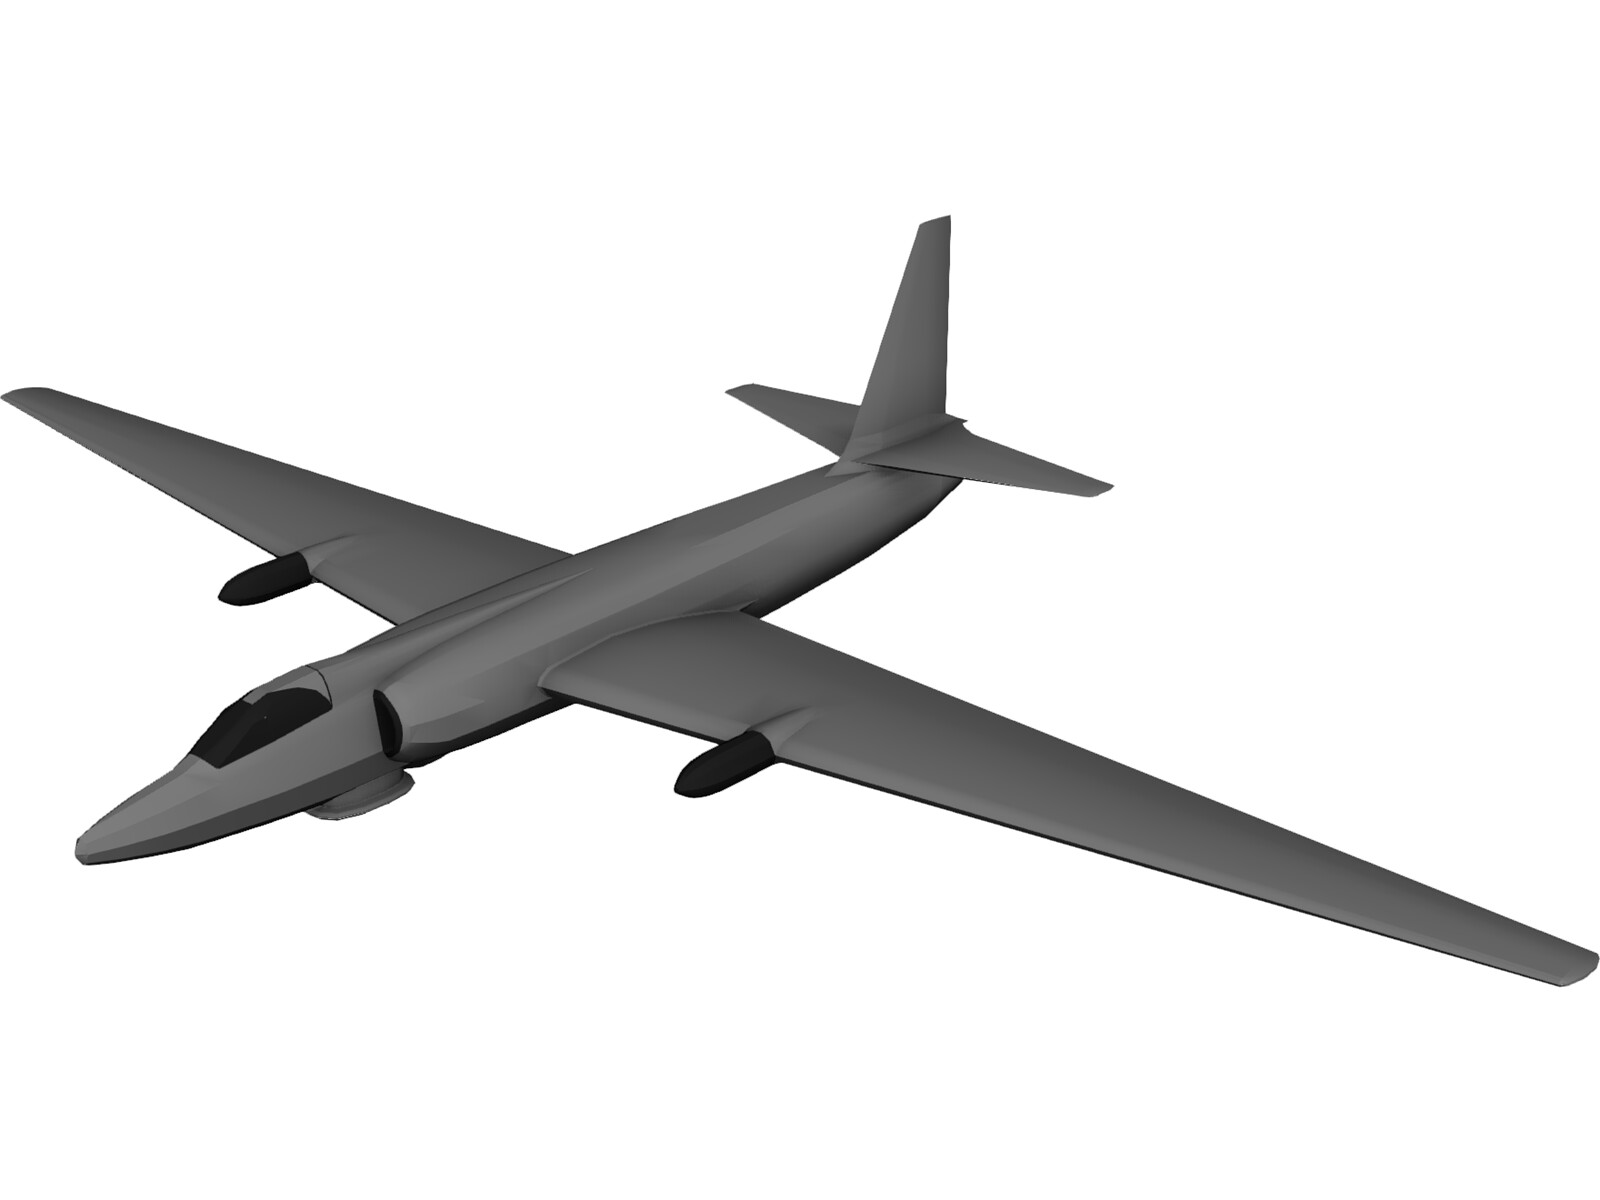 Lockheed U-2 Dragon Lady 3D Model